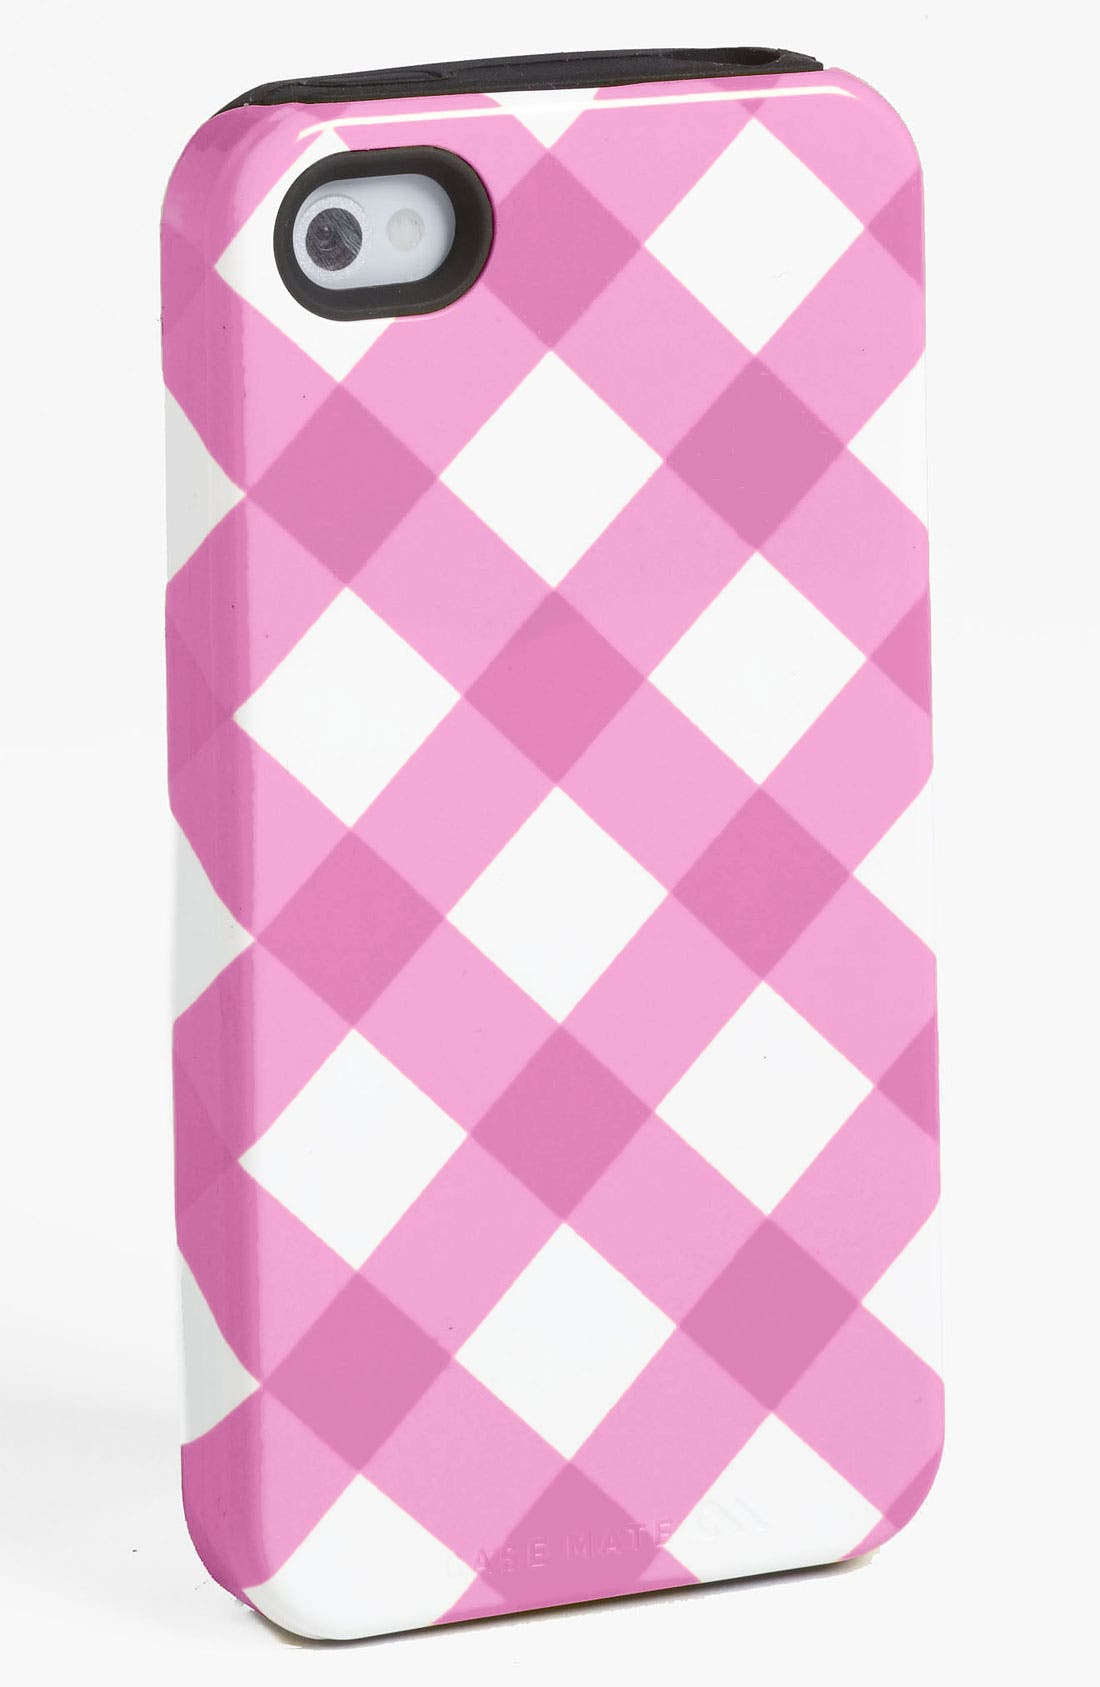 Main Image - Case-Mate® Gingham iPhone 5 Case (Nordstrom Exclusive)